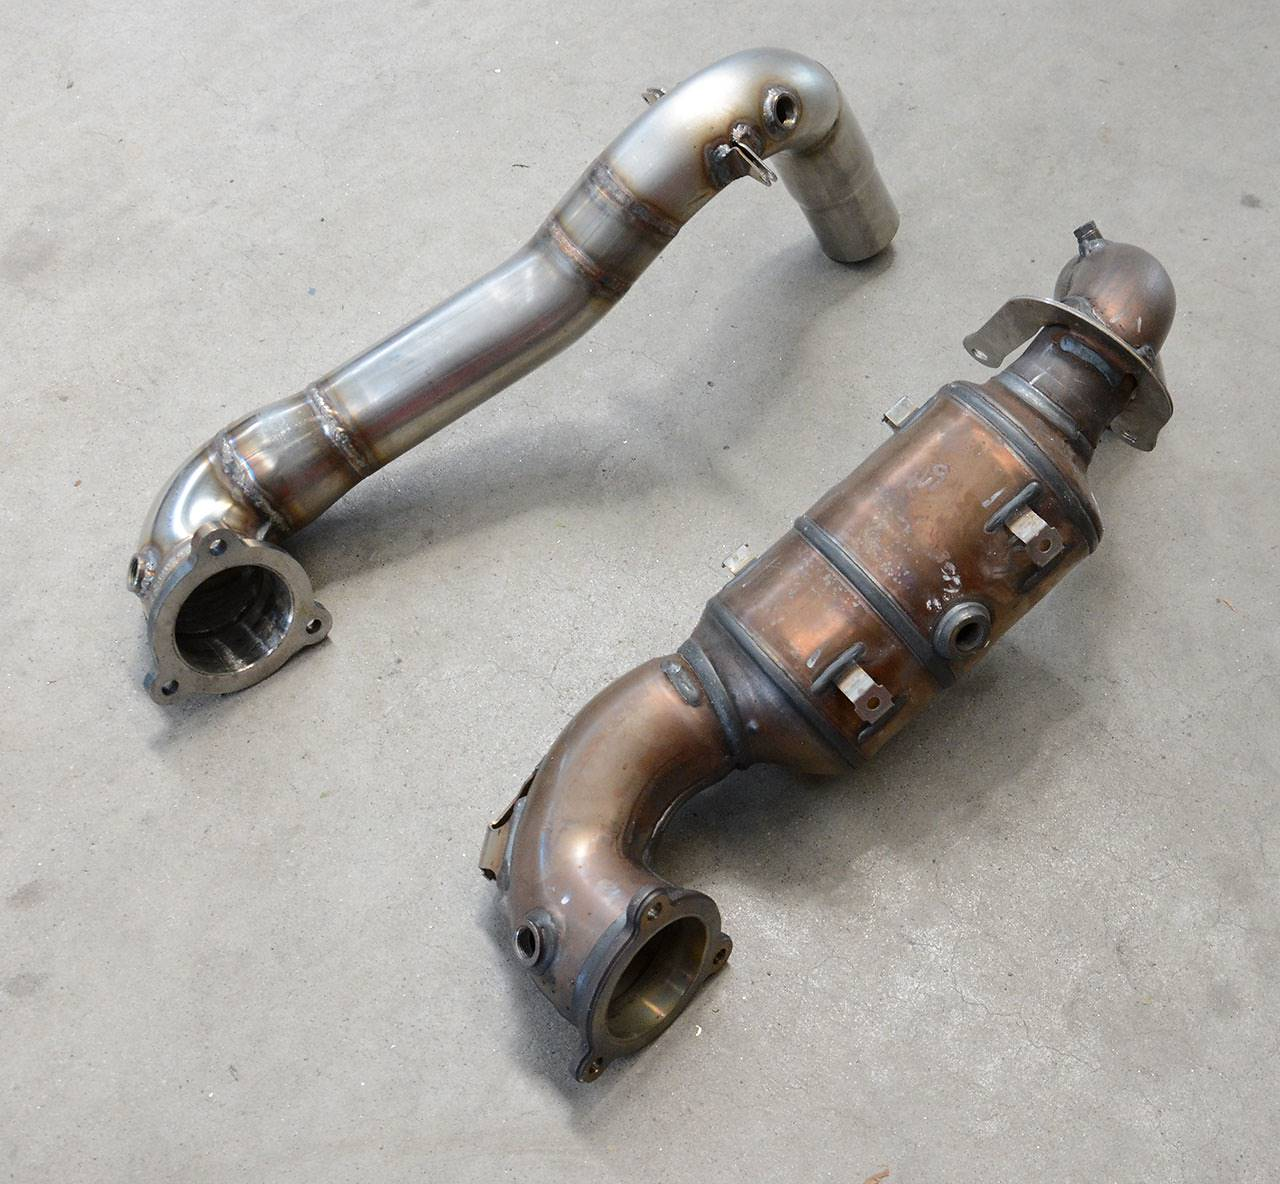 Stock Turbo downpipe VS Supersprint 722011 for OEM cat delete (decat pipe) for Mercedes W176 A220 / A250